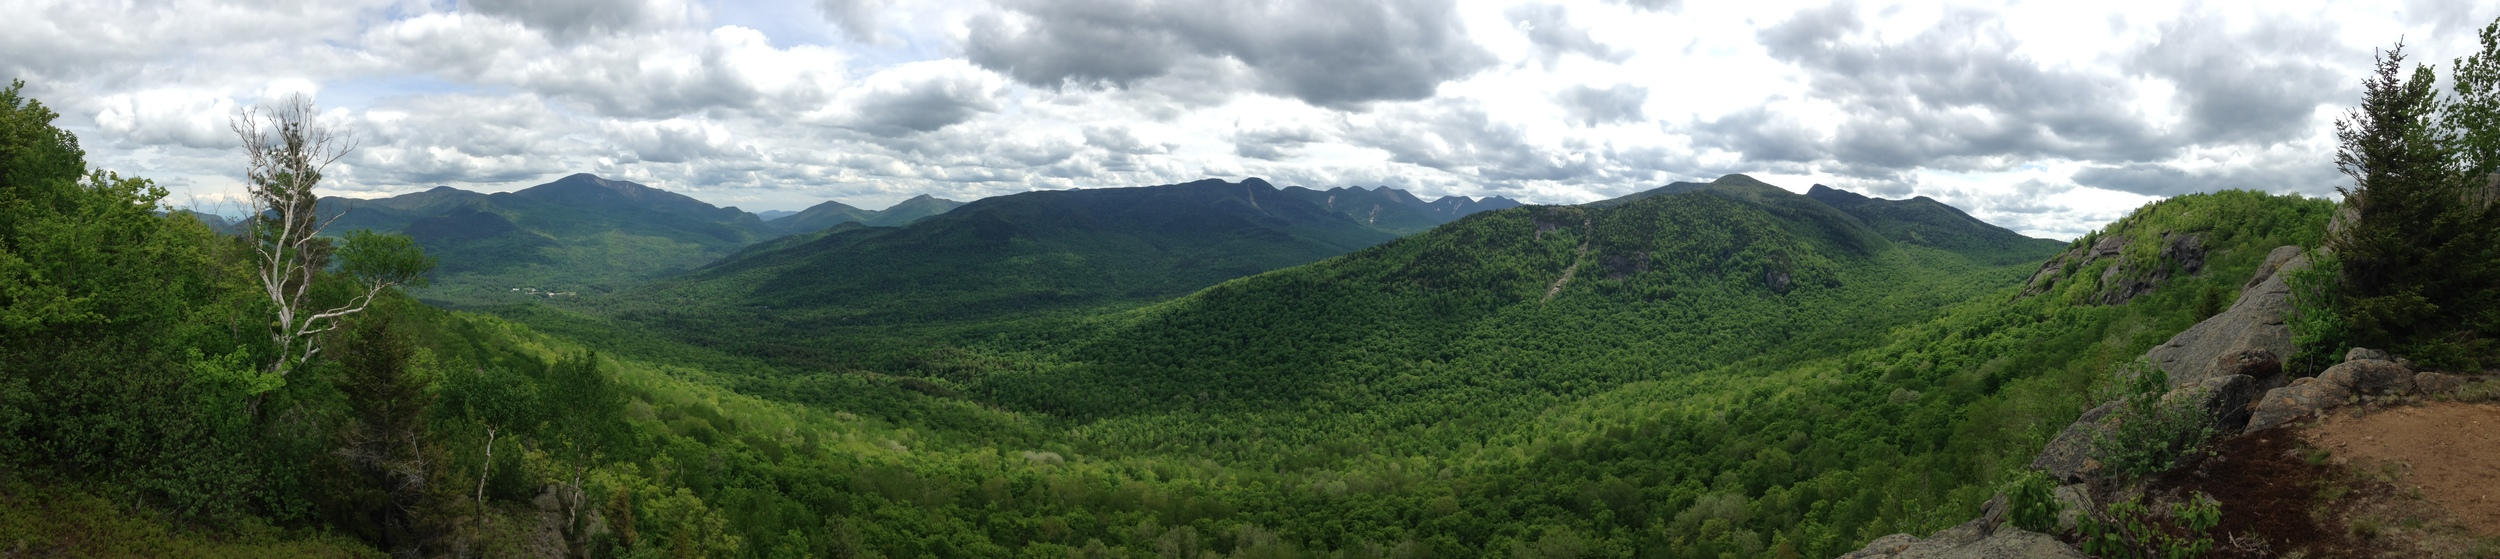 panoramic landscape of vermont mountains